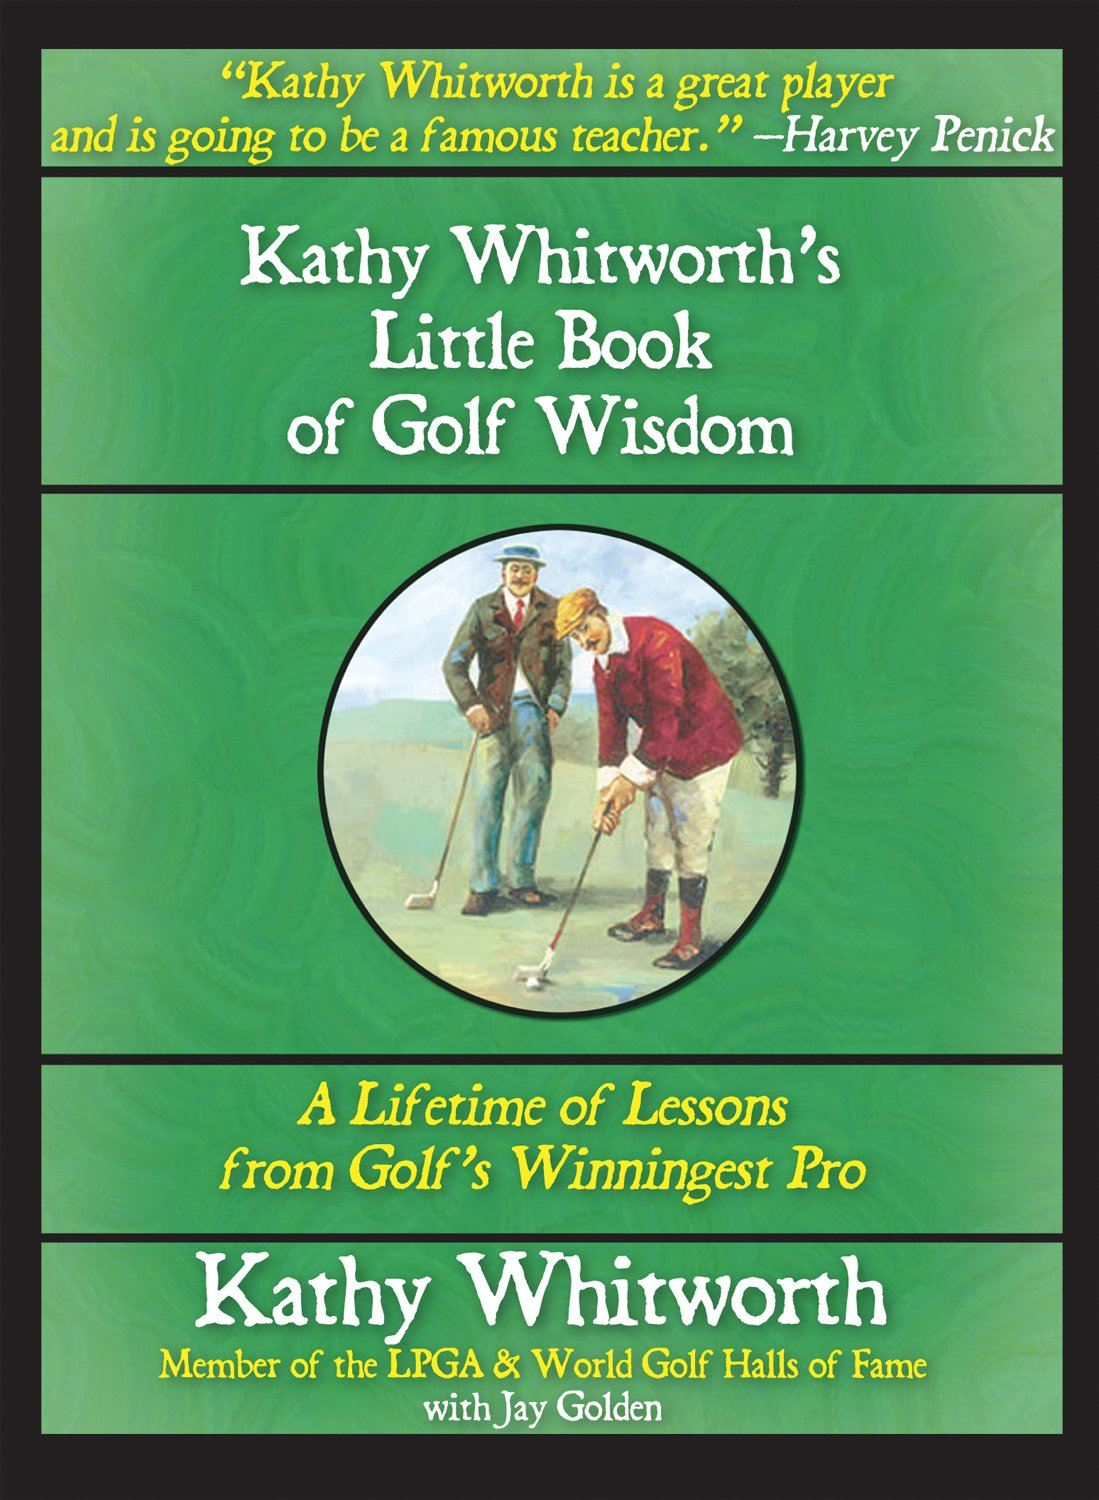 Kathy Whitworth's Little Book of Golf Wisdom: By: Kathy Whitworth, Jay Golden